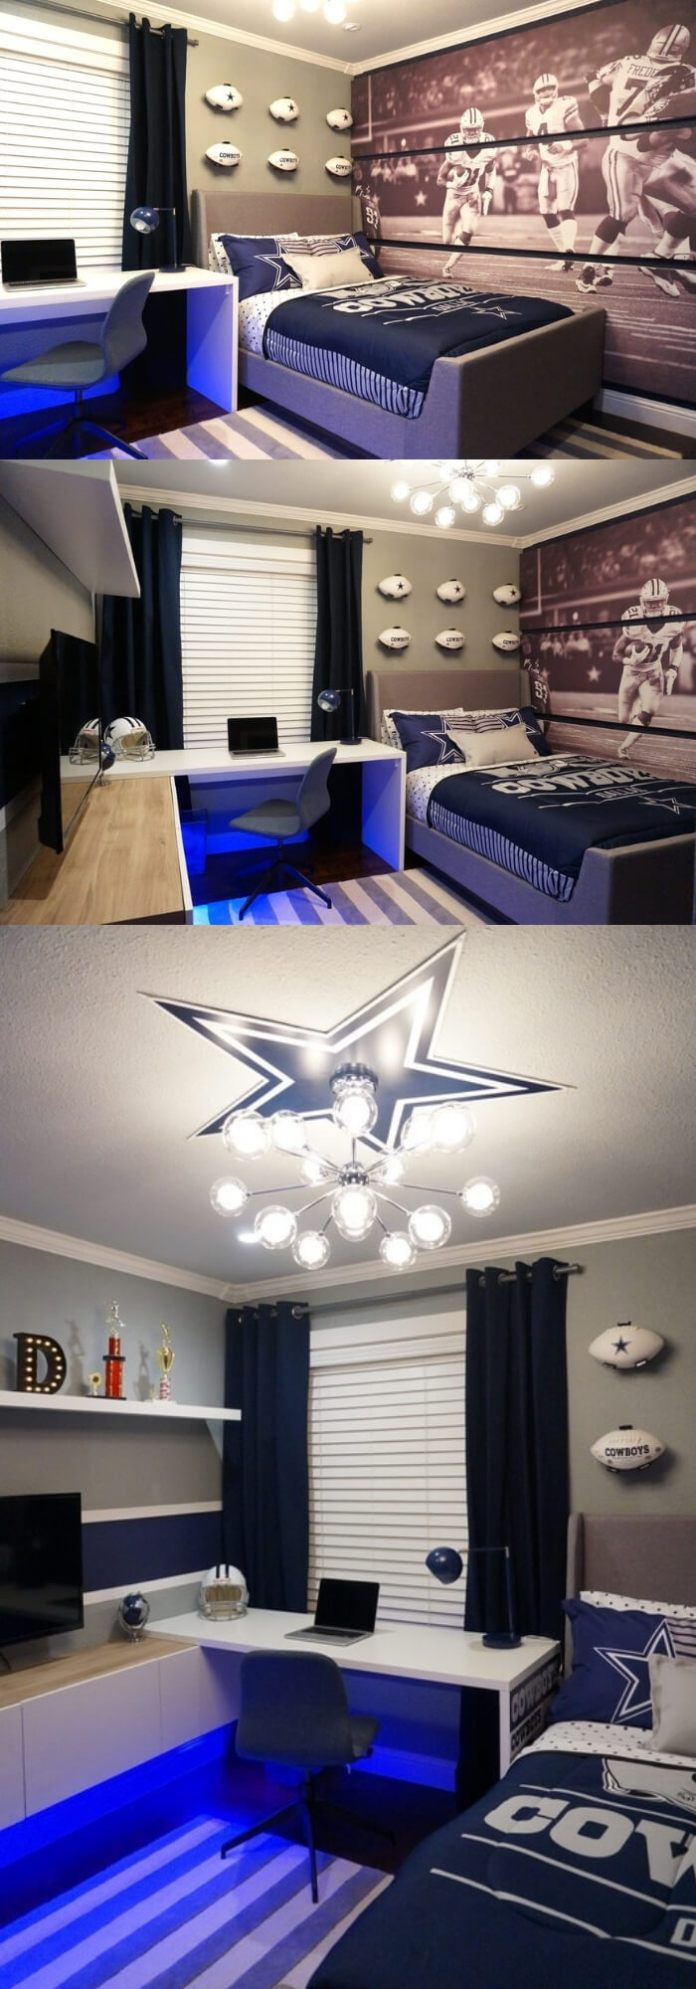 Cool Star Wars Bedroom Decor Ideas Interior Design Explained